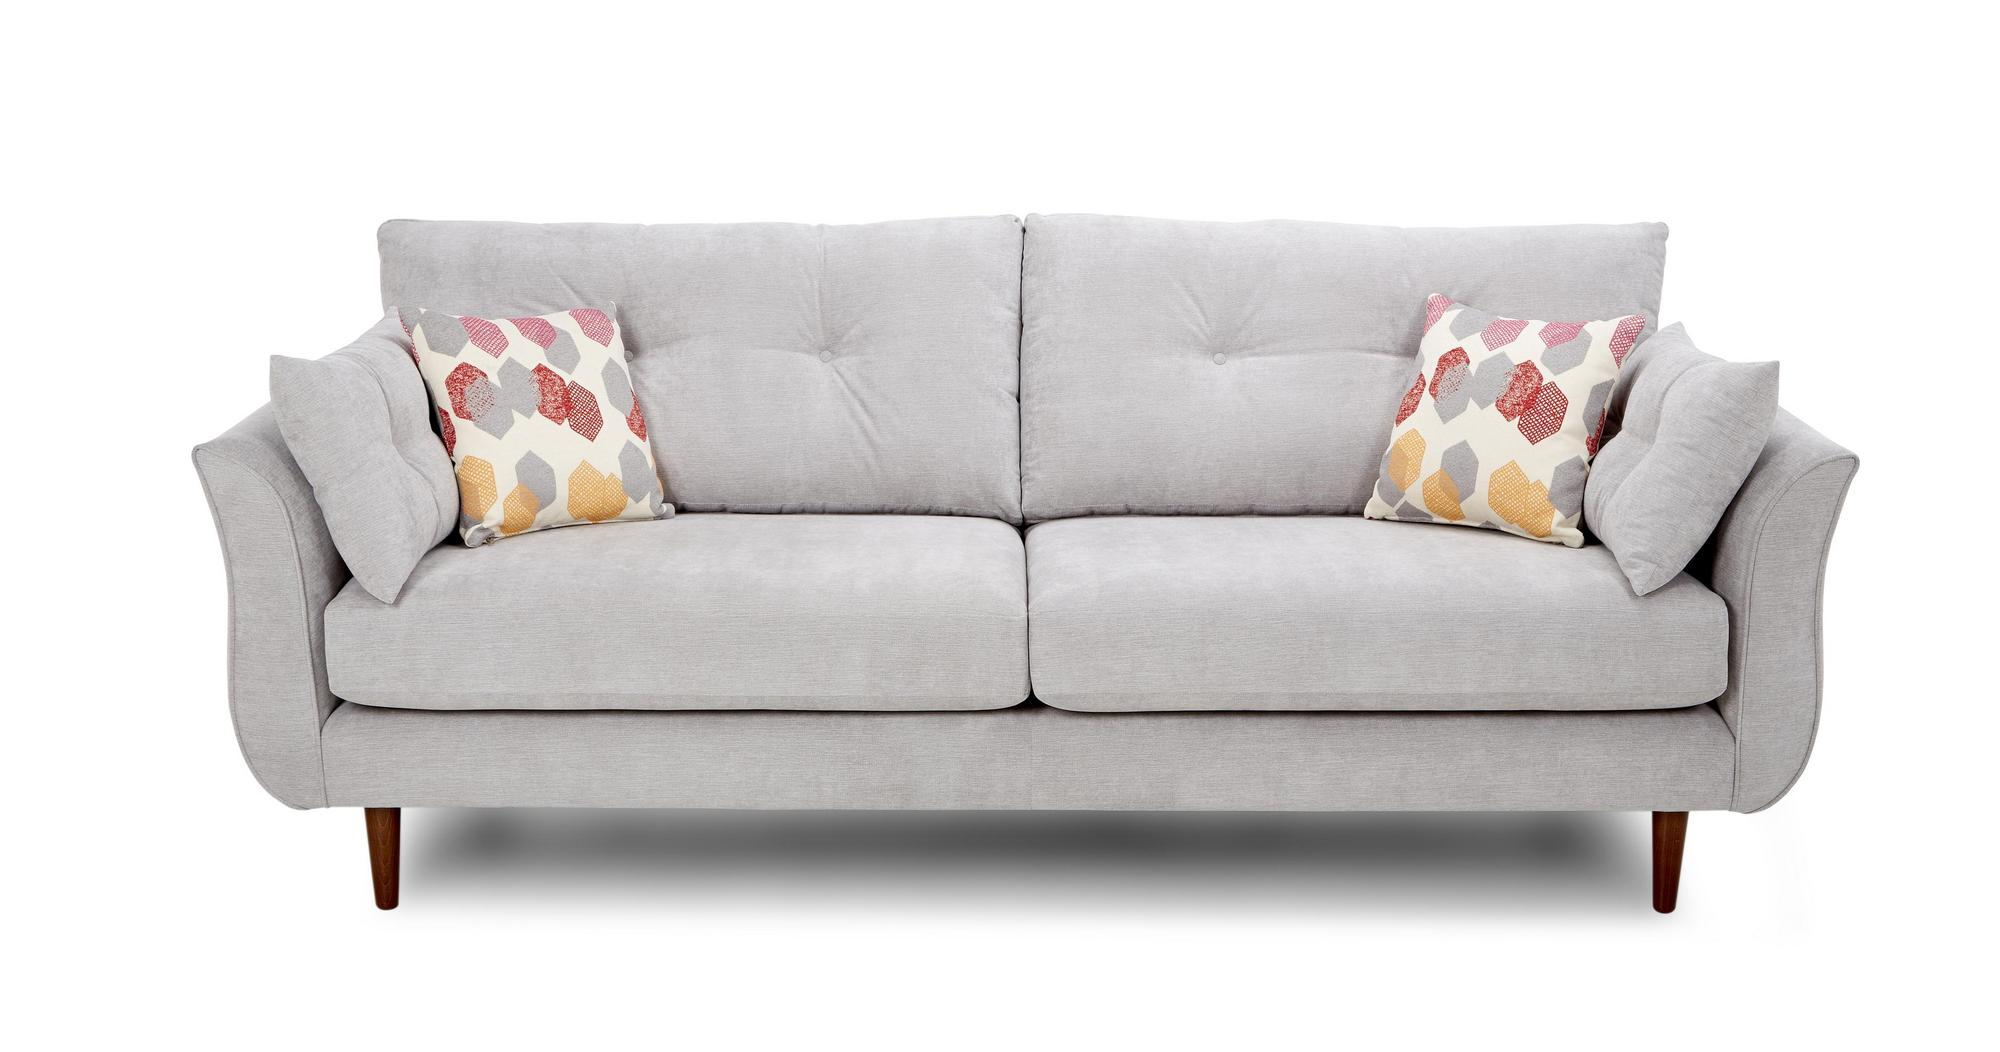 Dfs Bree Fabric 4 Seater Sofa 2 Seater Cuddler